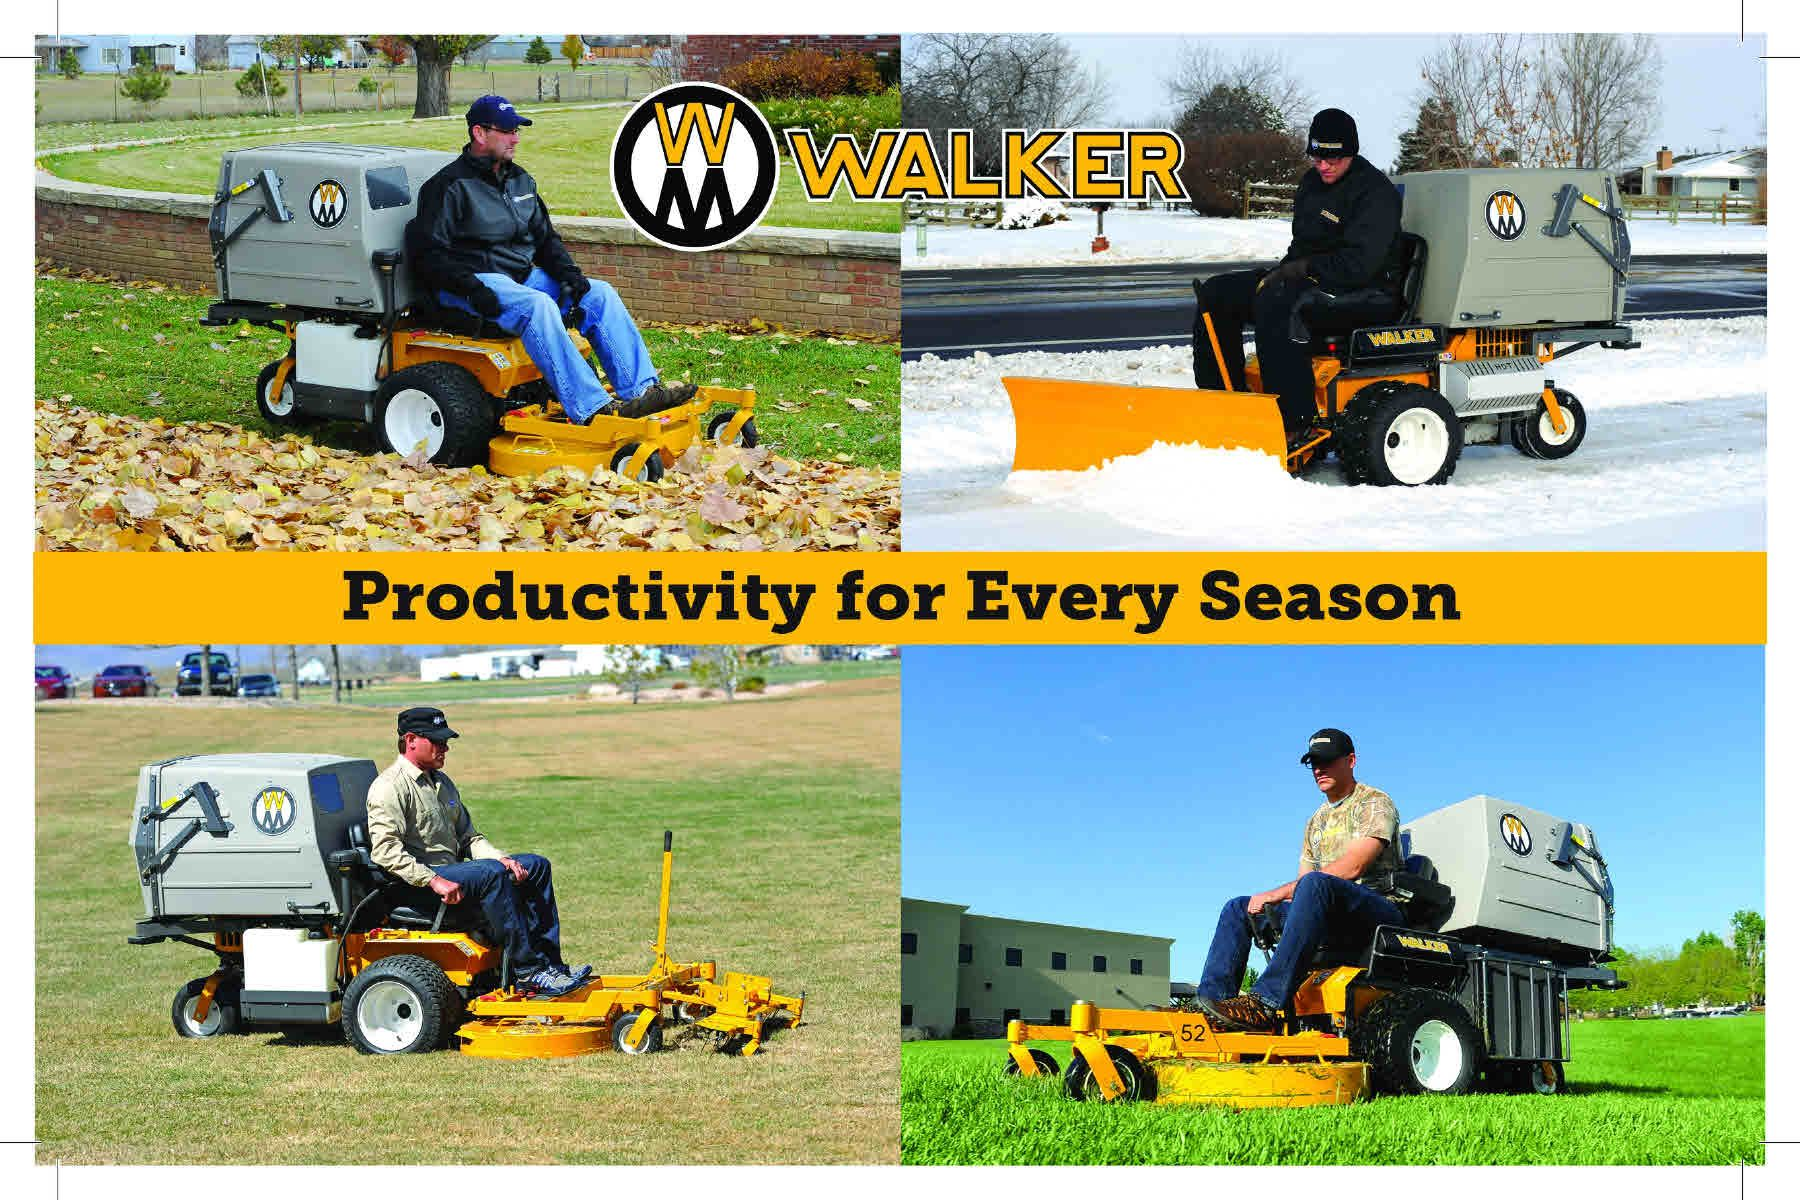 Walker-Rider-Mowers (1).jpg